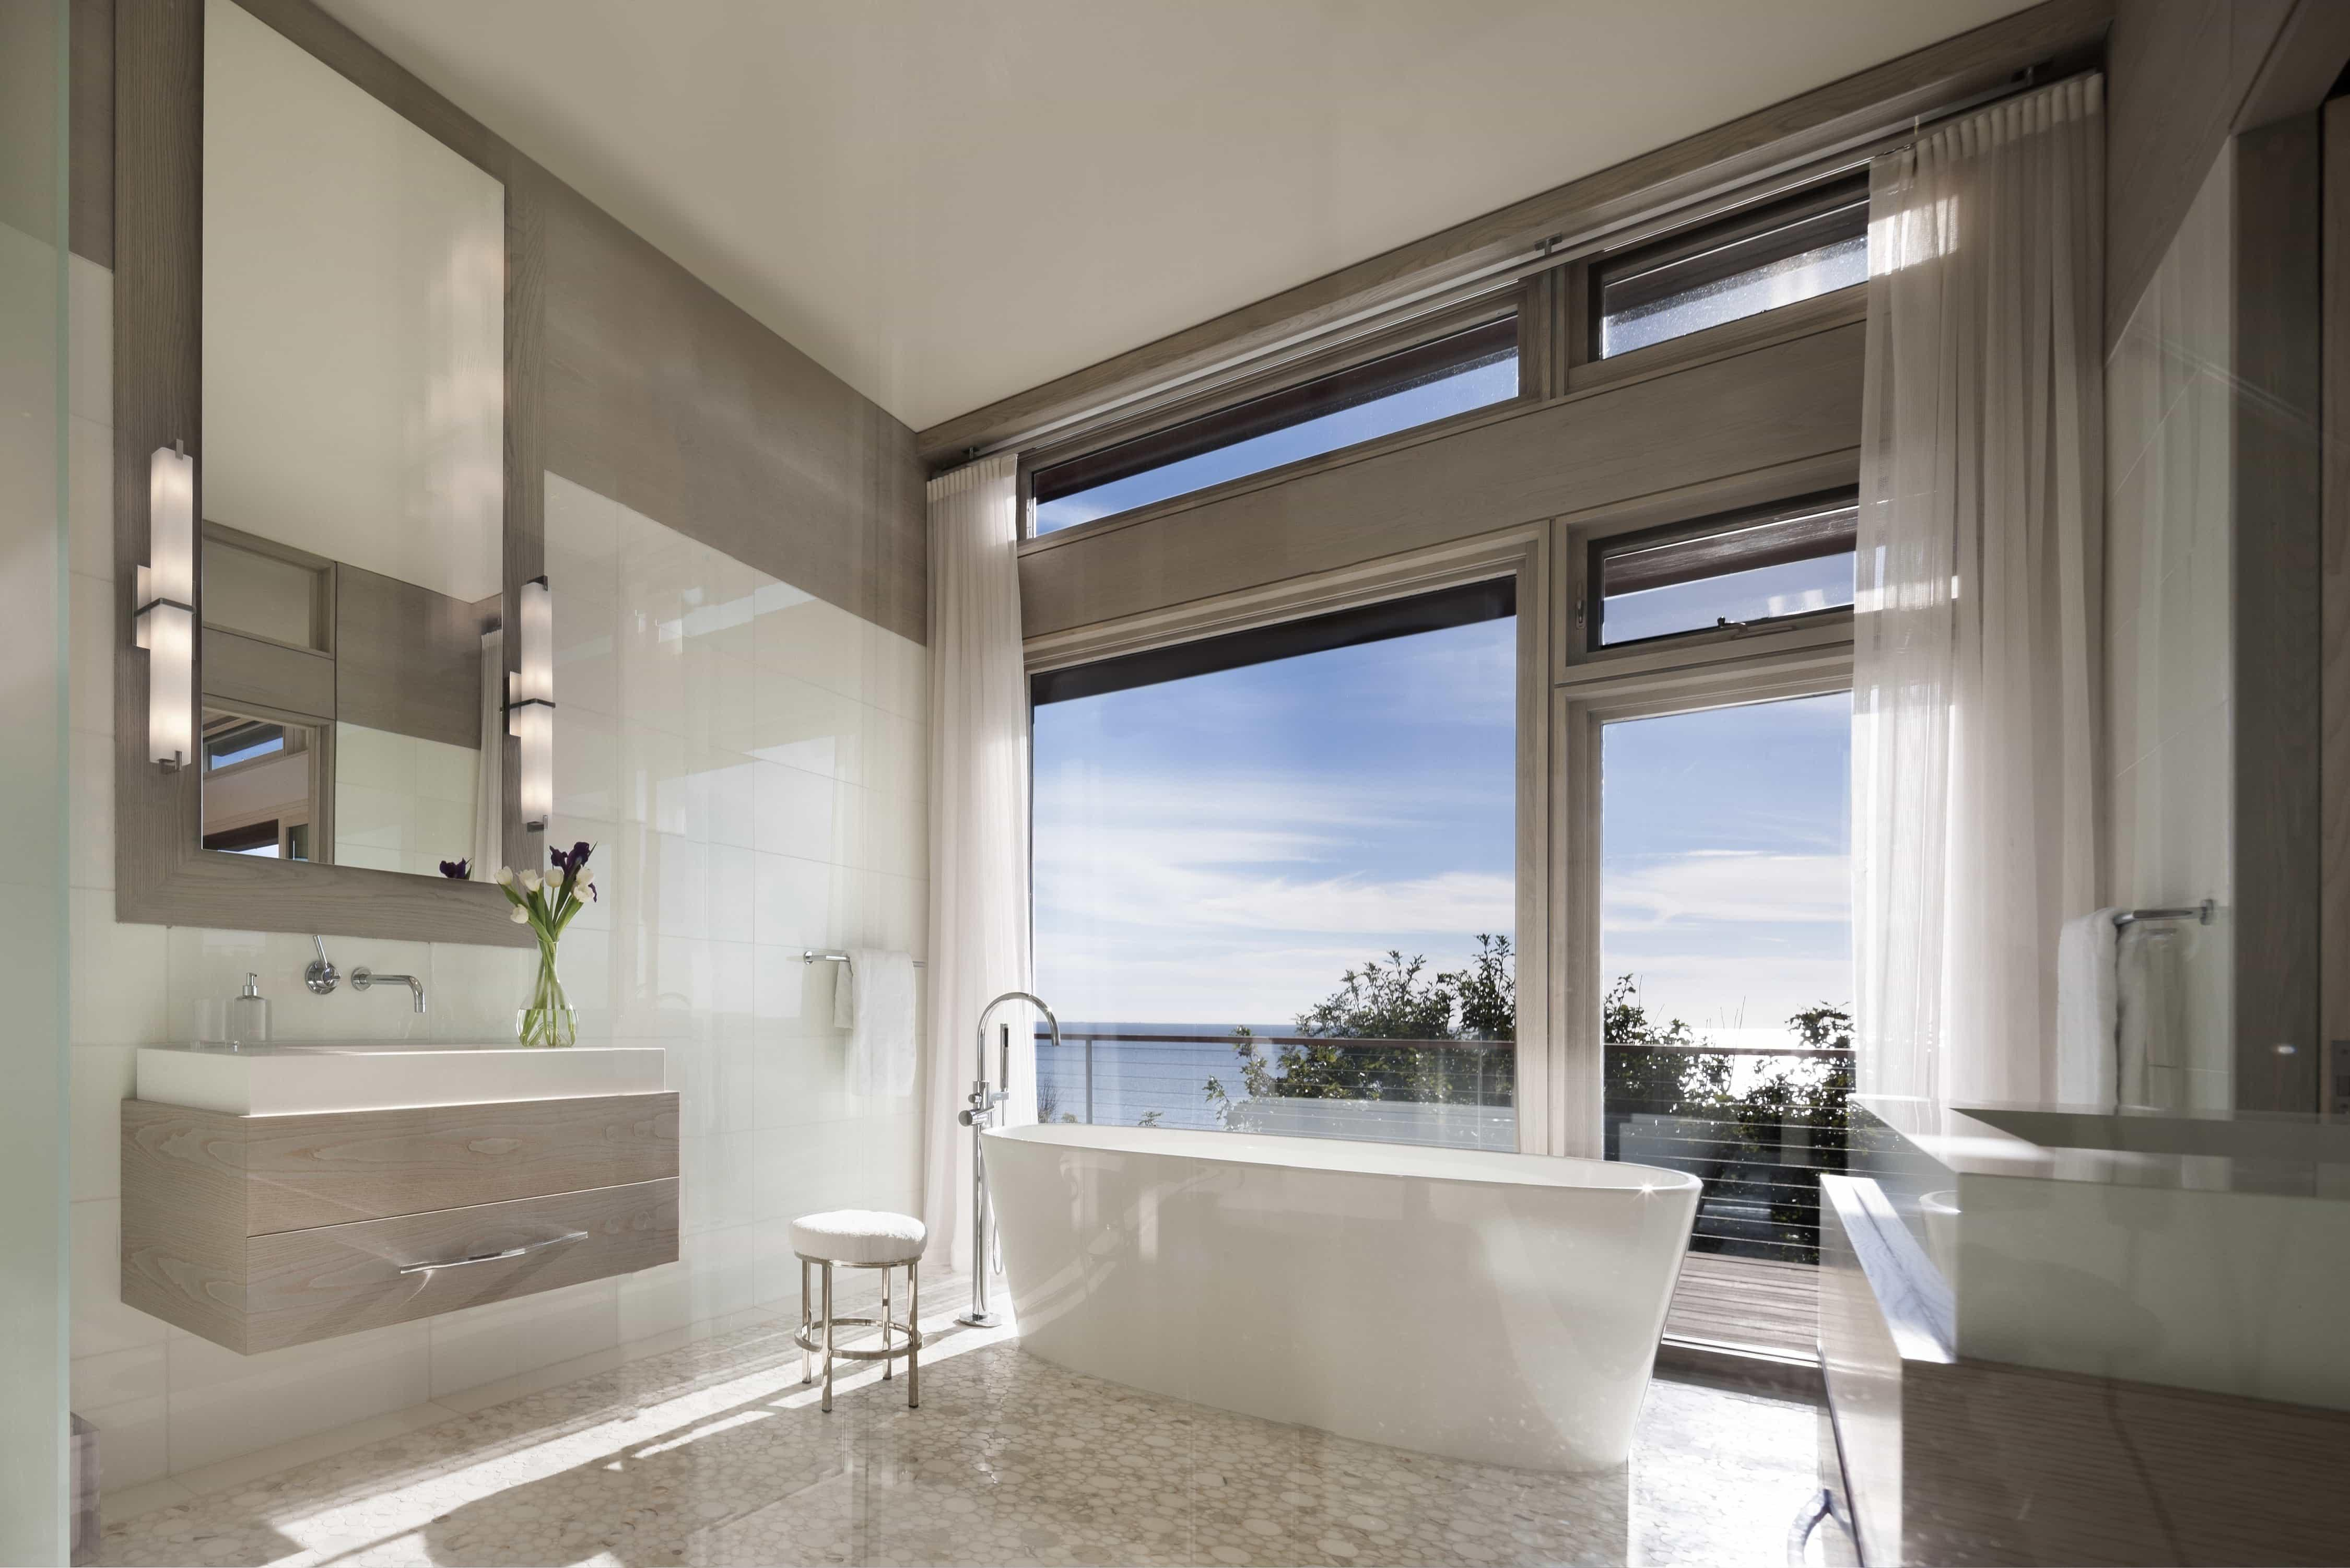 Bathroom Ideas Modern Luxury Designs